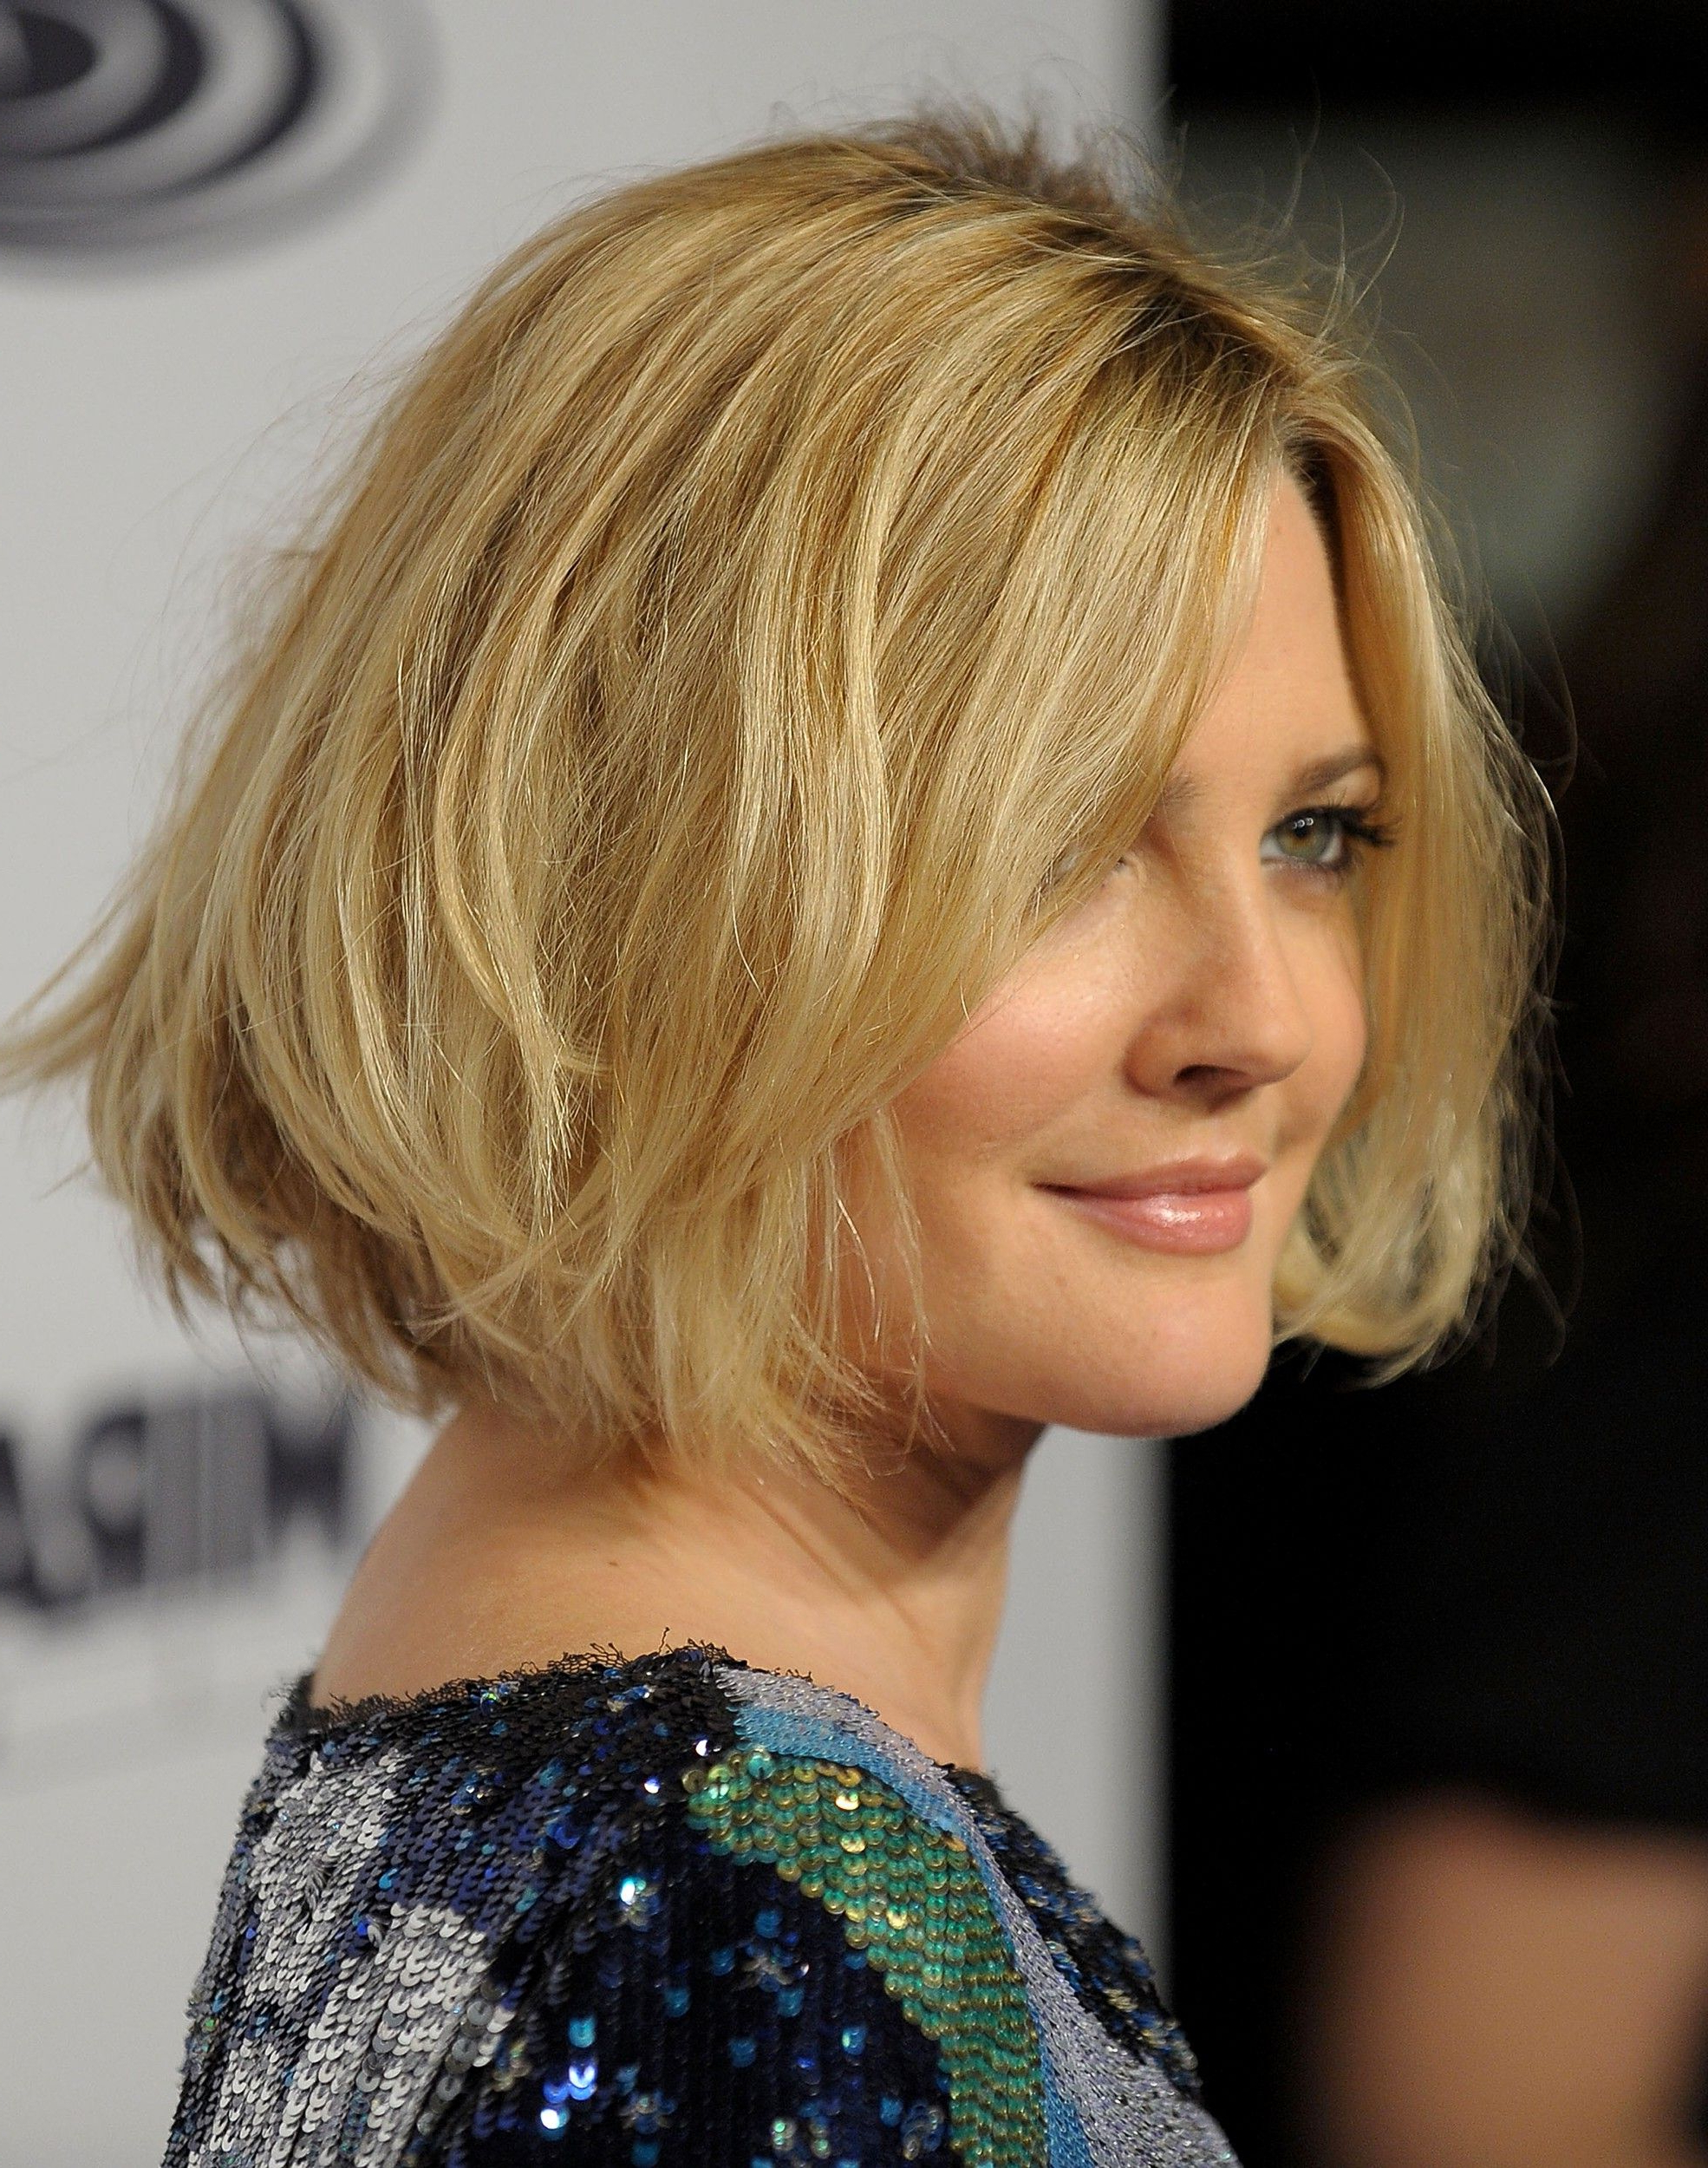 Drew Barrymore Short Hairstyle Regarding Popular Drew Barrymore Medium Hairstyles (View 5 of 20)